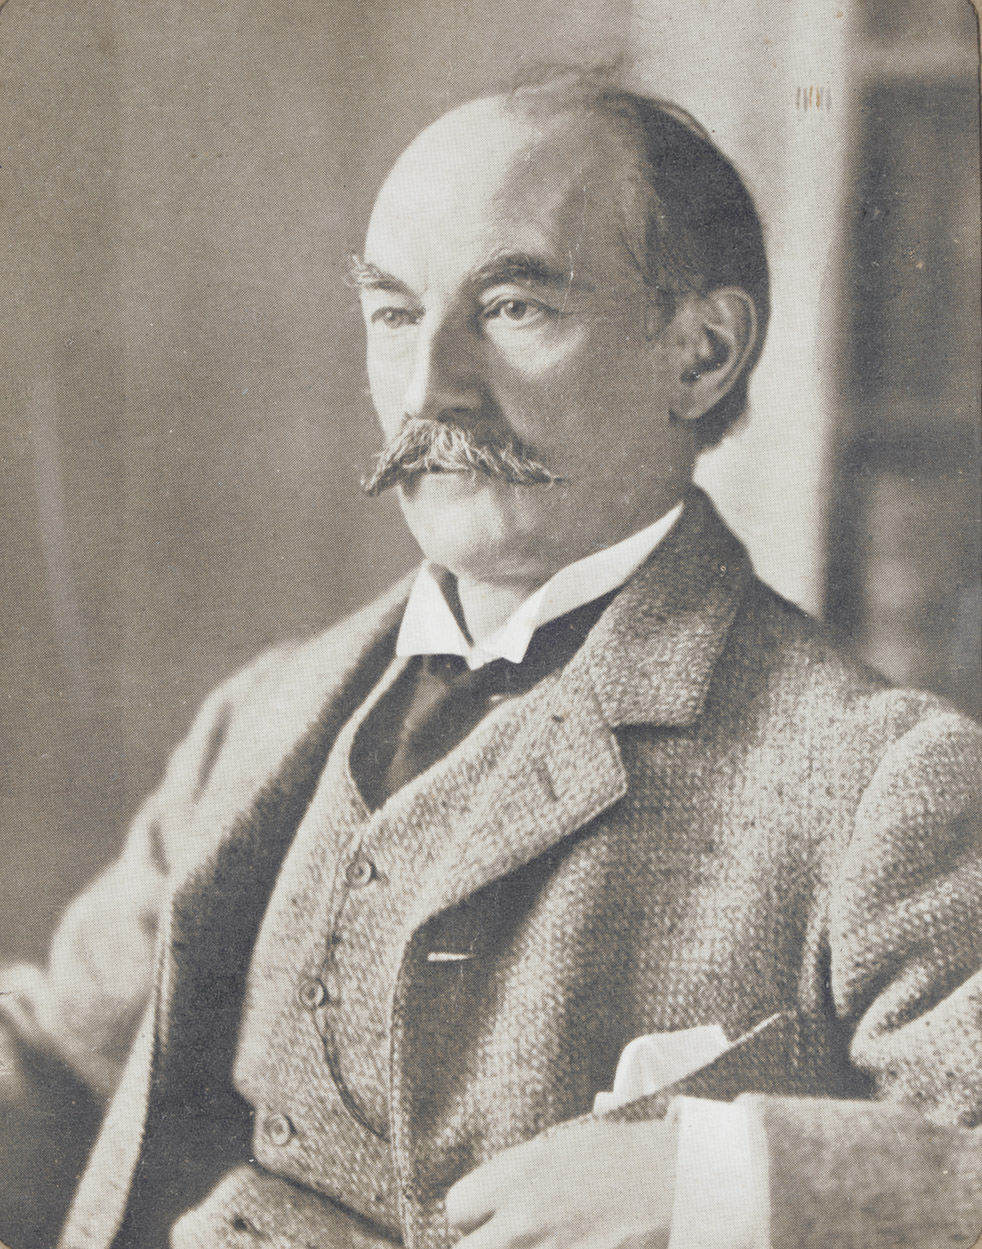 HARDY, Thomas (1840-1928). Photograph signed (on mount, 'Thomas Hardy'), a half-length portrait showing the author seated, in a tweed suit, [c.1890], half-tone print, 116 x 92mm, in a mount 175 x 147mm, framed and glazed.